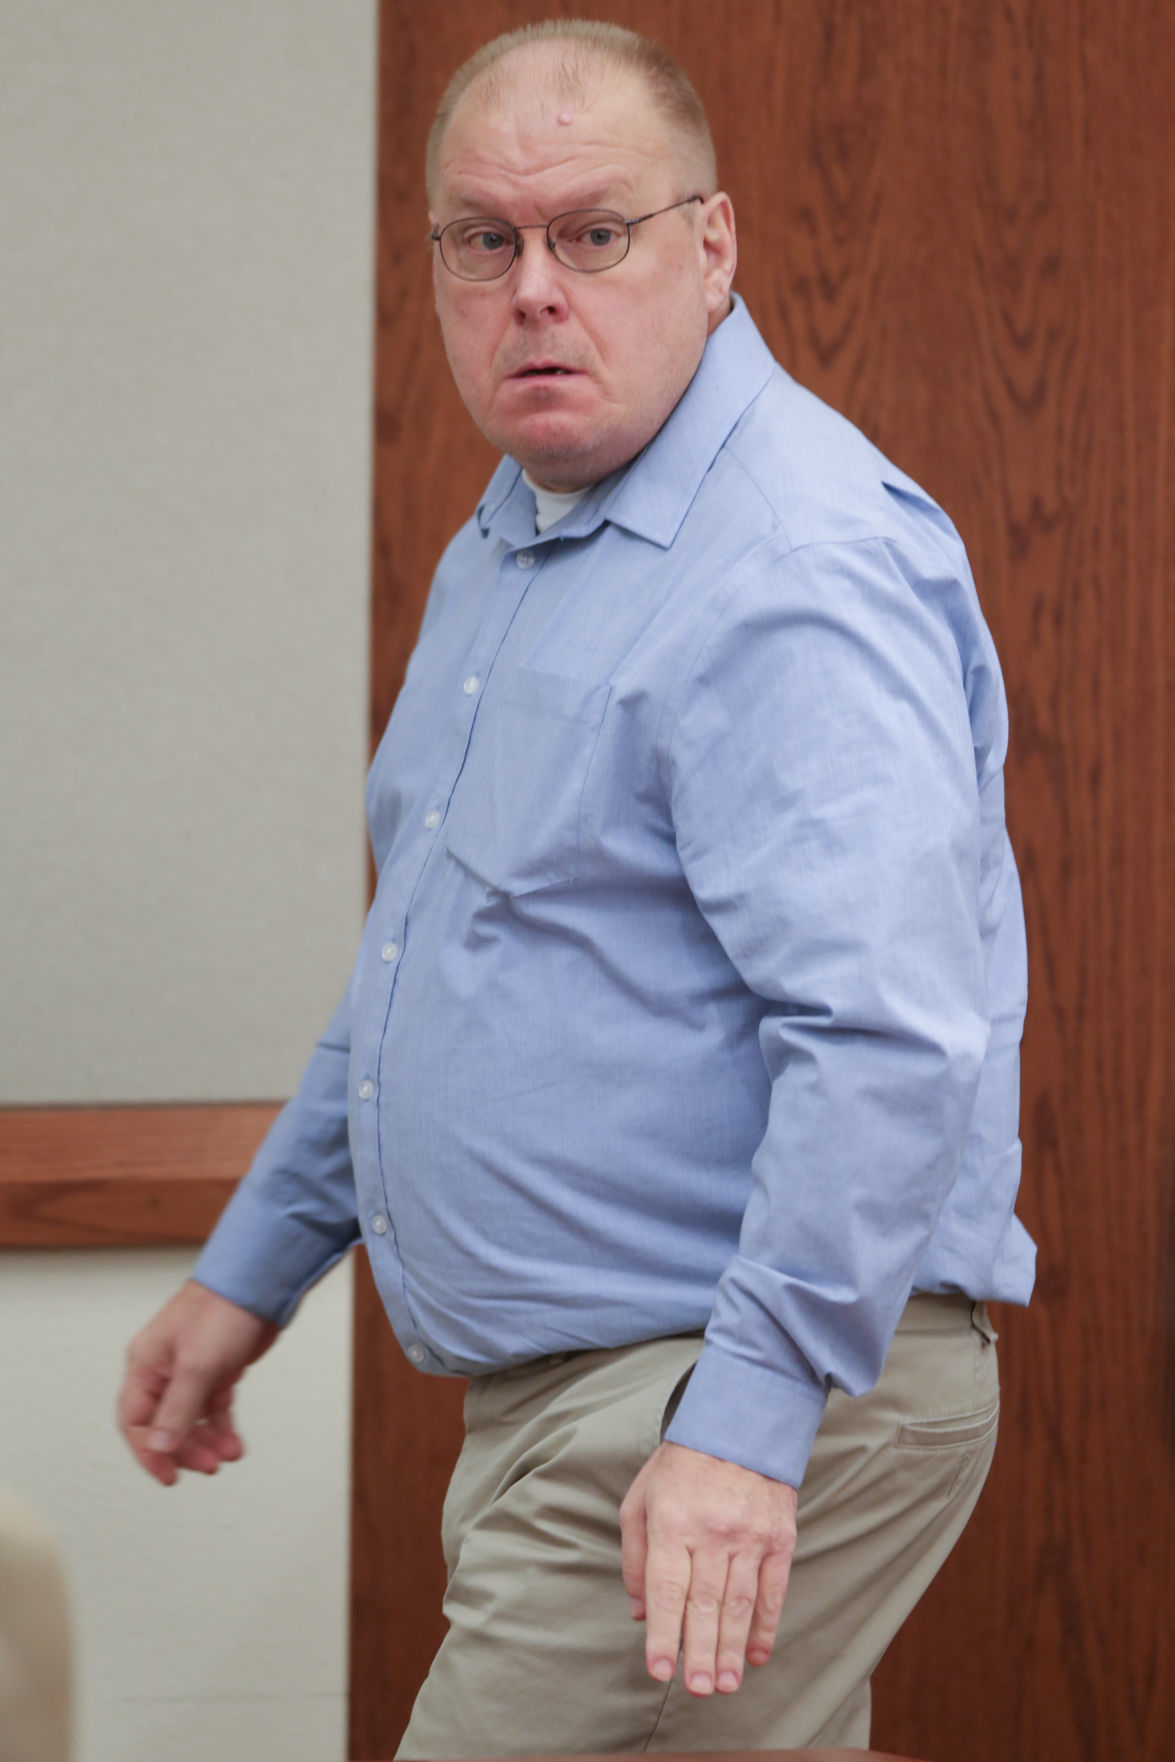 Mark Wilson enters courtroom